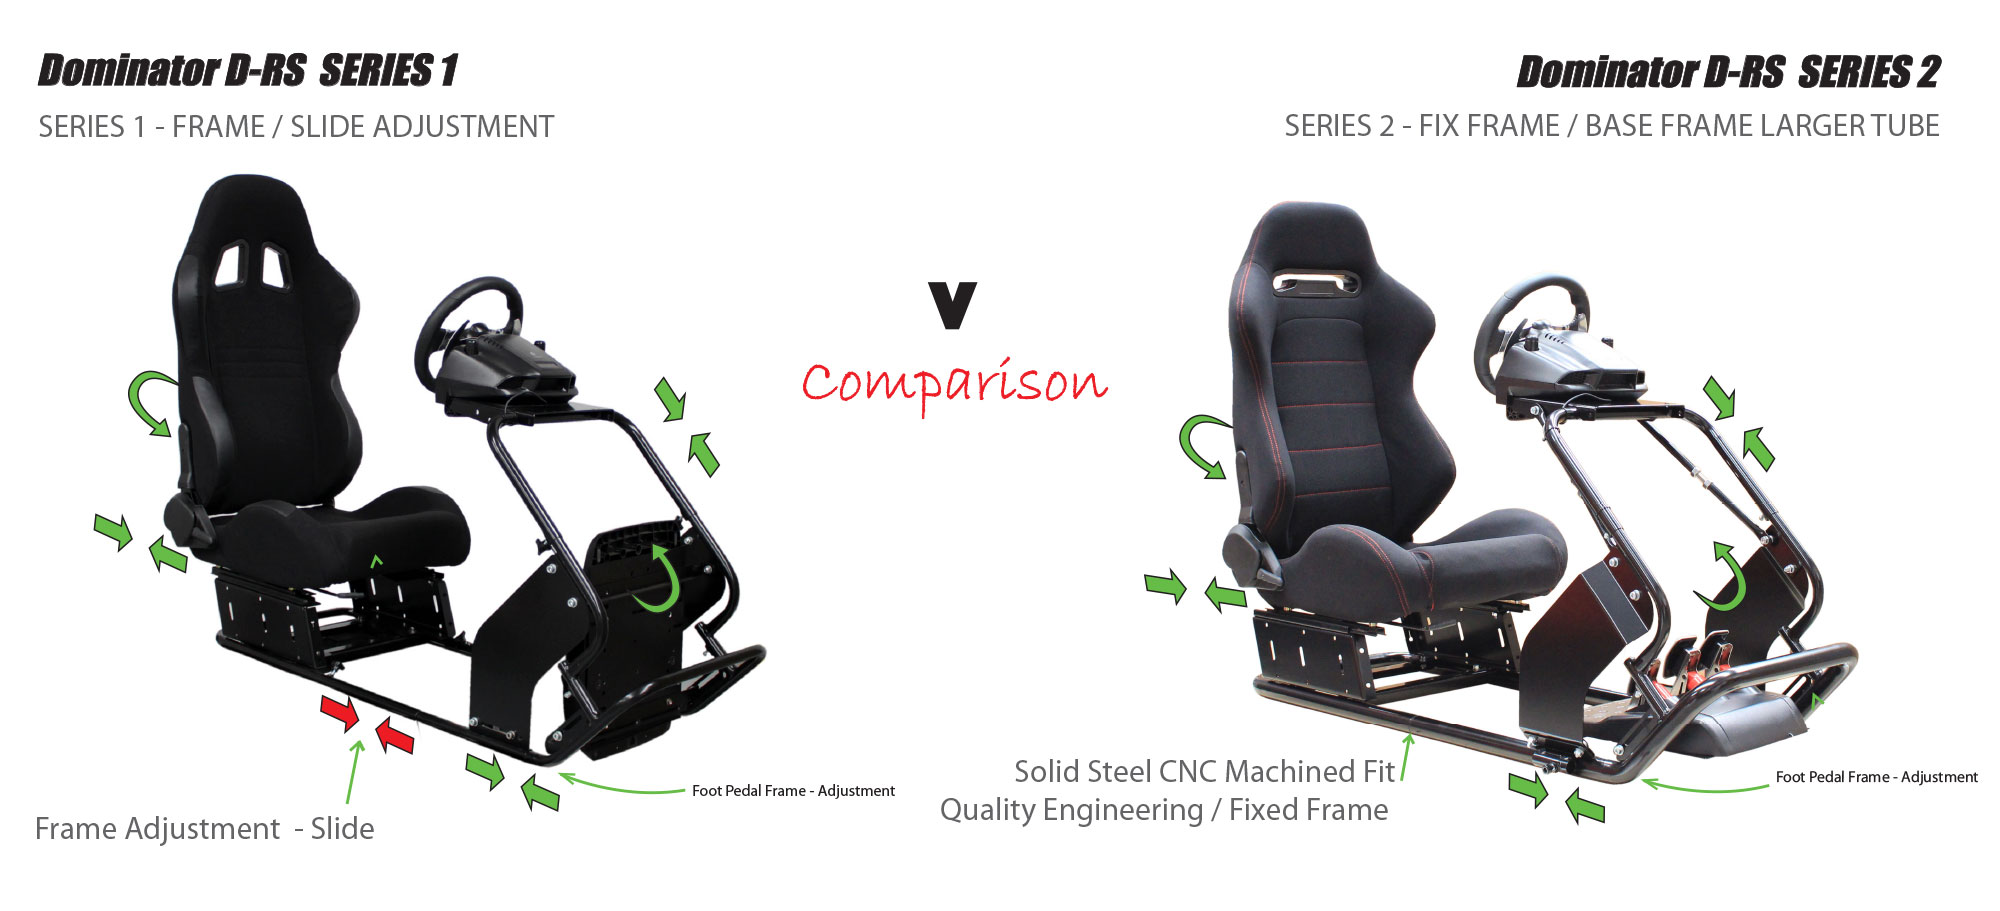 home racing simulator,car racing simulator for sale,race car simulator for sale eBay,v8 supercar simulator for sale,made in Australia simulator,car simulator,city car simulator,best home car simulator, racing simulator, best racing simulator pc, pc racing seat, car driving simulator pc, xbox one